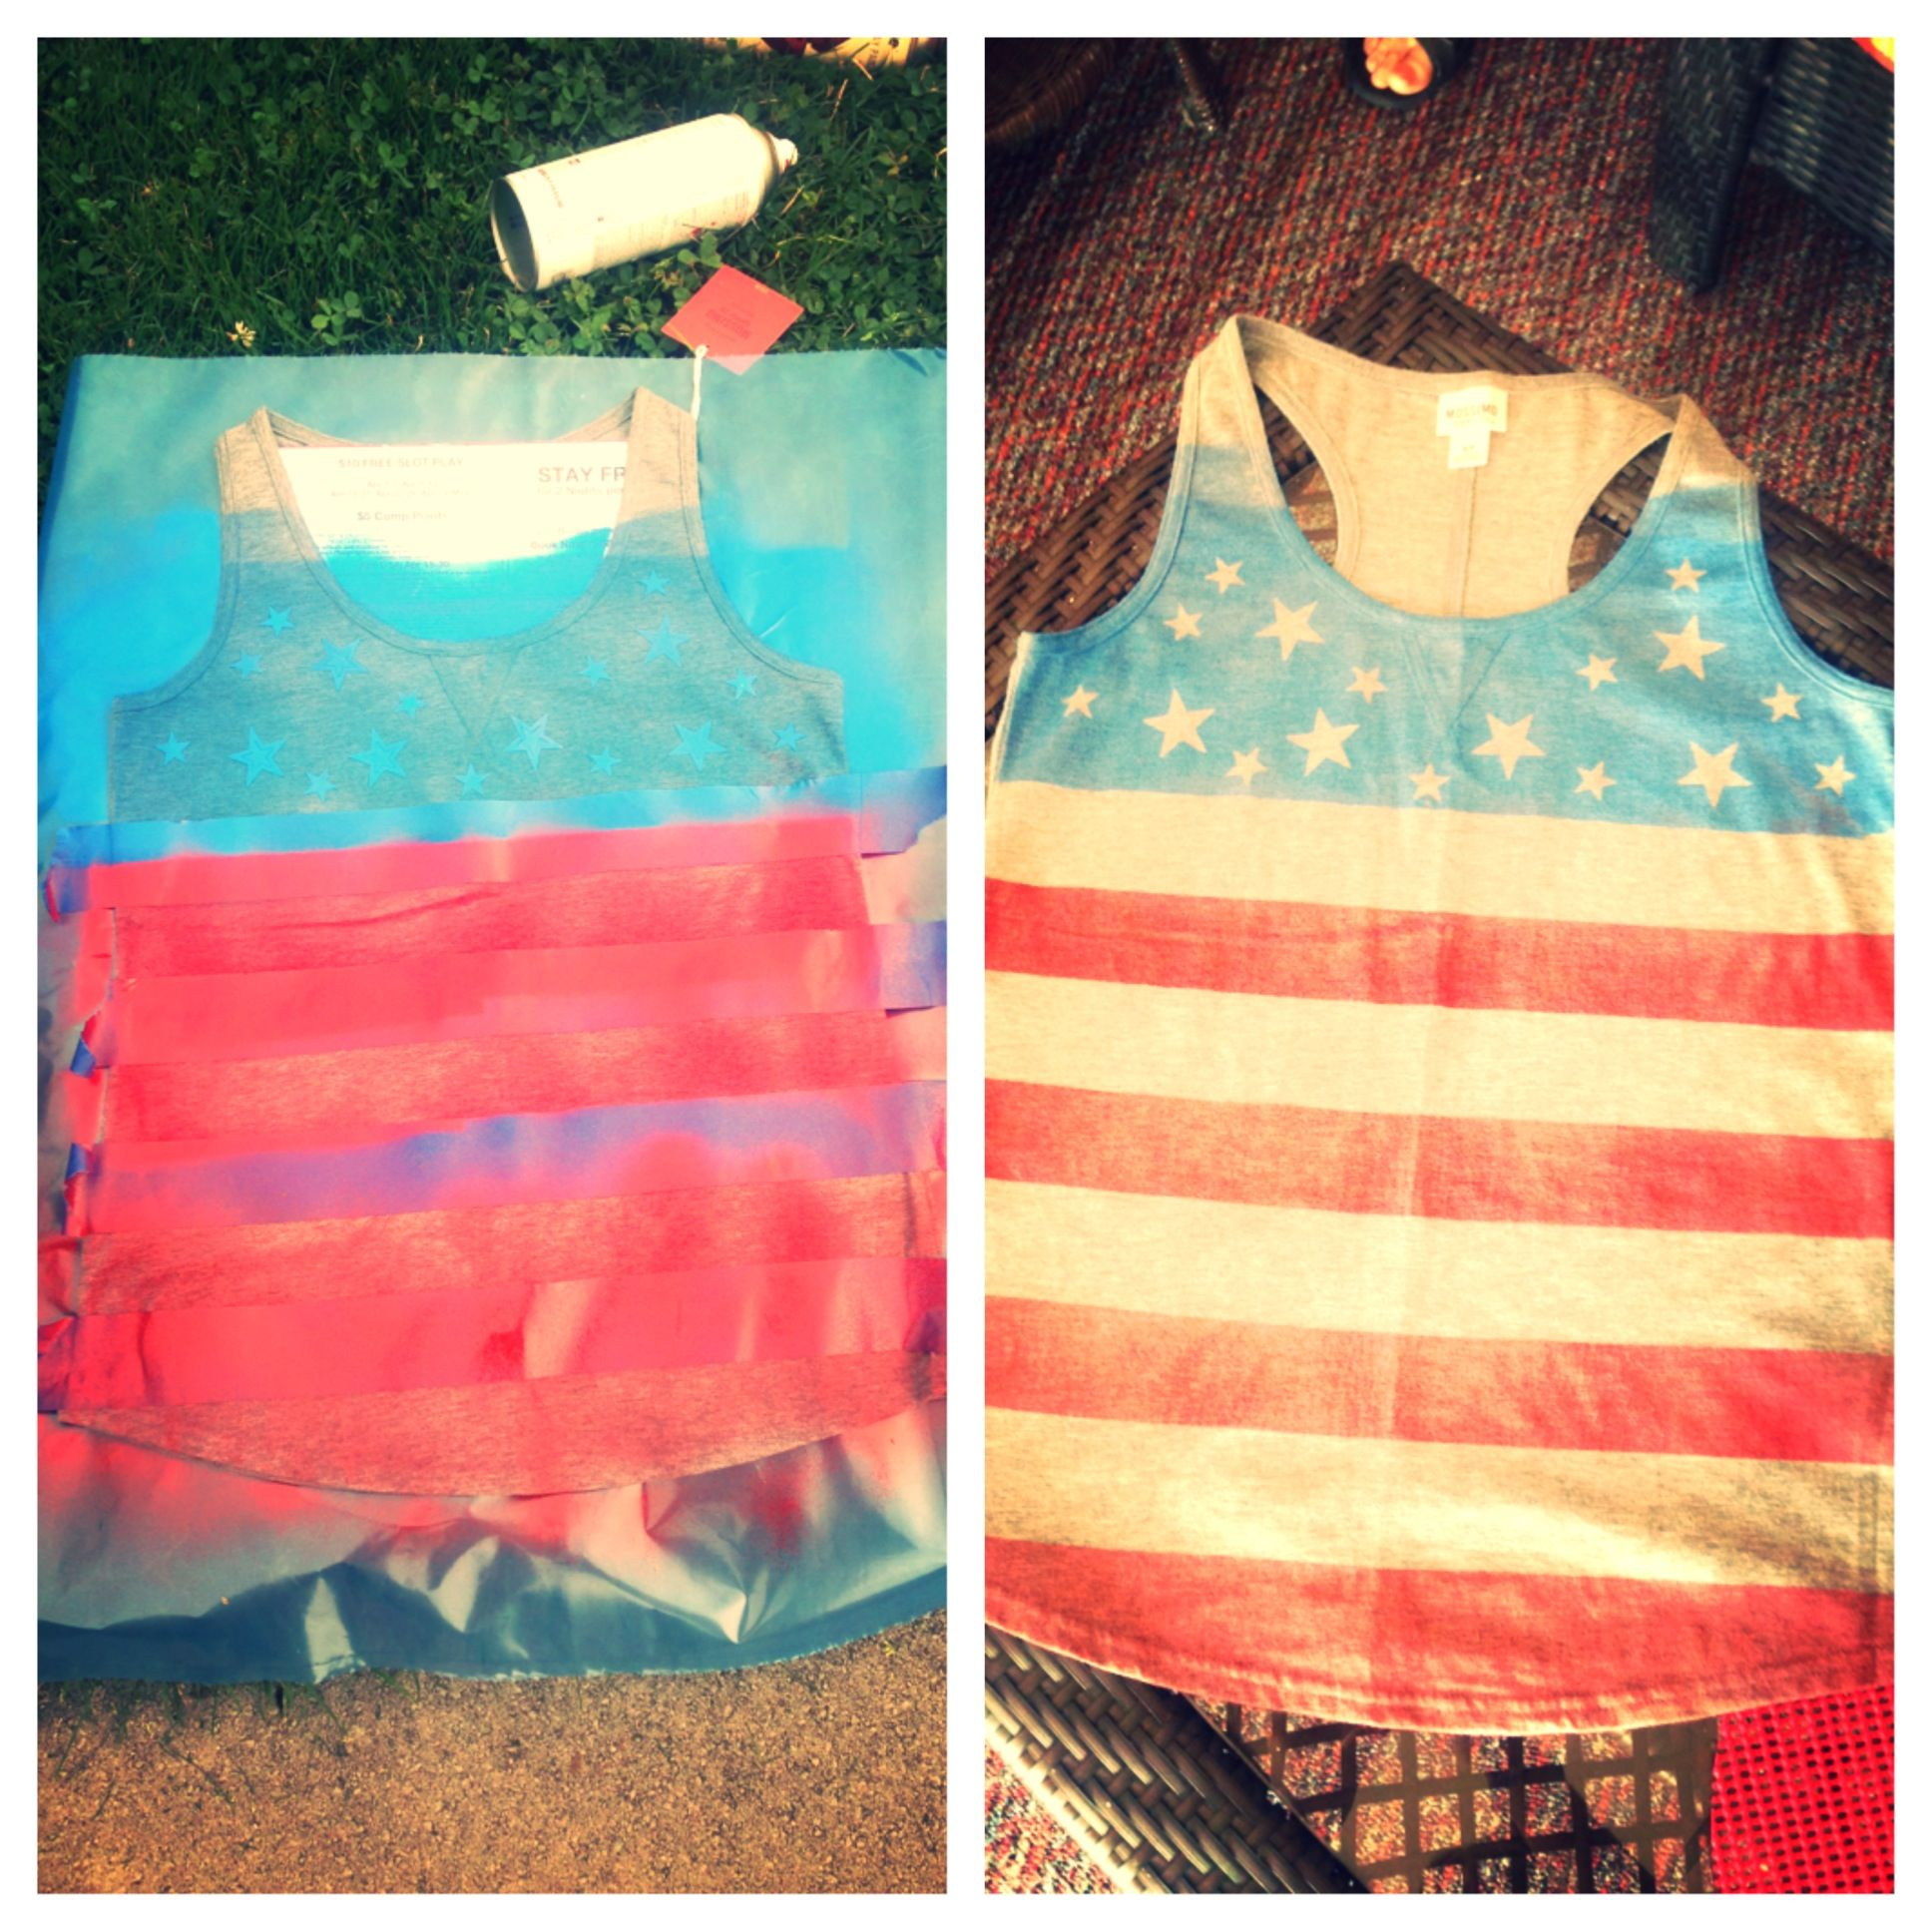 Diy Tank Simple Using Blue Painters Tape Create A Stripe Pattern From The Bust Area Down Using Spray Paint S Athletic Tank Tops Blue Spray Paint Diy Tank